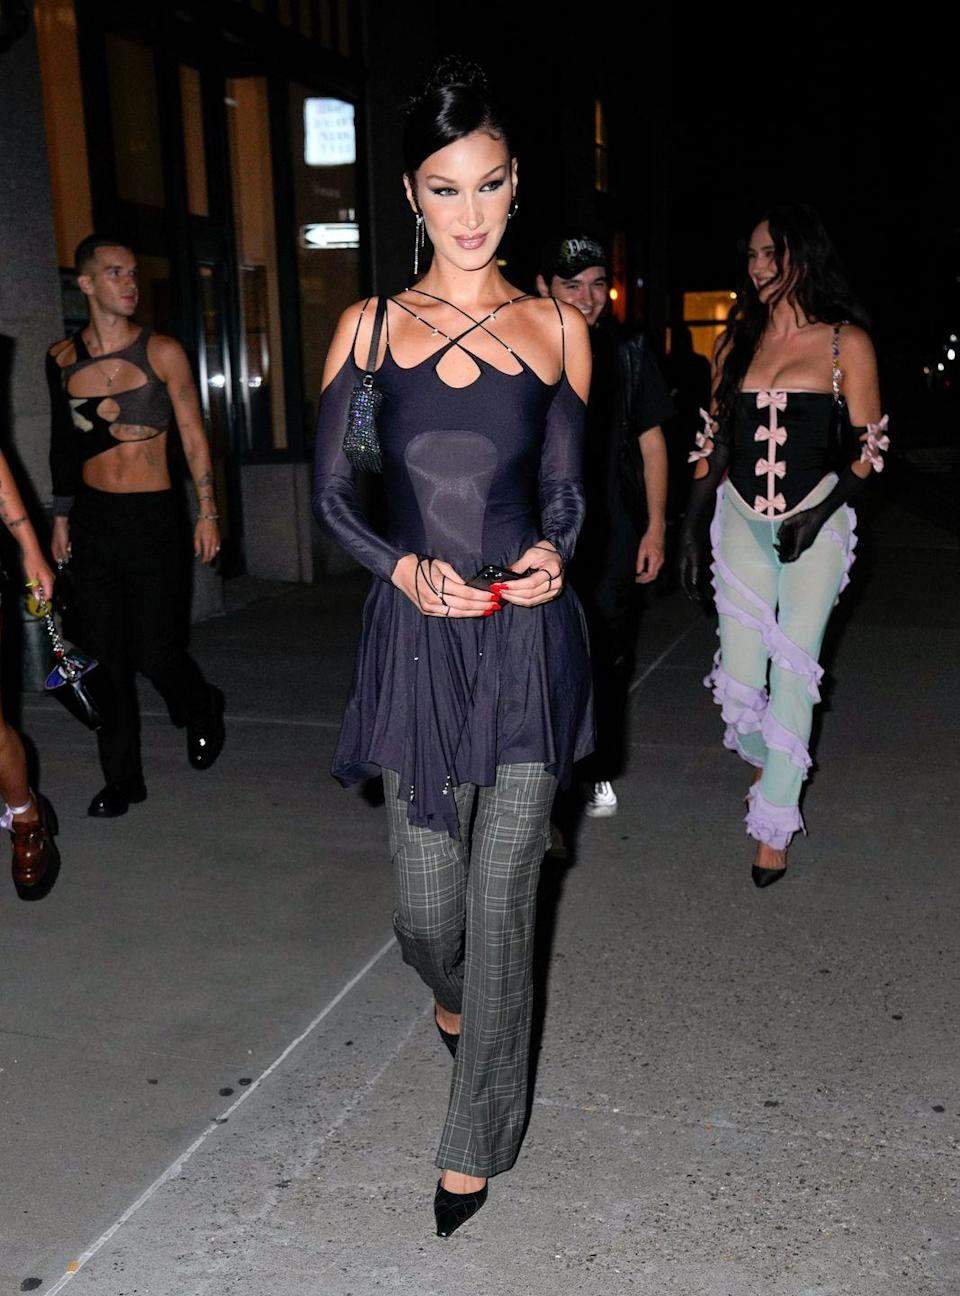 """<p>Model Bella Hadid is in New York ahead of fashion week shows and on September 8, she is rumoured to have hosted a party to celebrate the launch of her new non-alcoholic drink brand Kin Euphorics.</p><p>'There are a lot of creative people, but with creativity comes a sort of brokenness or unbalancedness. I feel that people deserve to feel good all the time…' Bella said to <a href=""""https://www.businessoffashion.com/"""" rel=""""nofollow noopener"""" target=""""_blank"""" data-ylk=""""slk:Business of Fashion"""" class=""""link rapid-noclick-resp"""">Business of Fashion</a>. 'That's why being able to come into this business and bring this back into our fashion industry is super important to me.'</p>"""